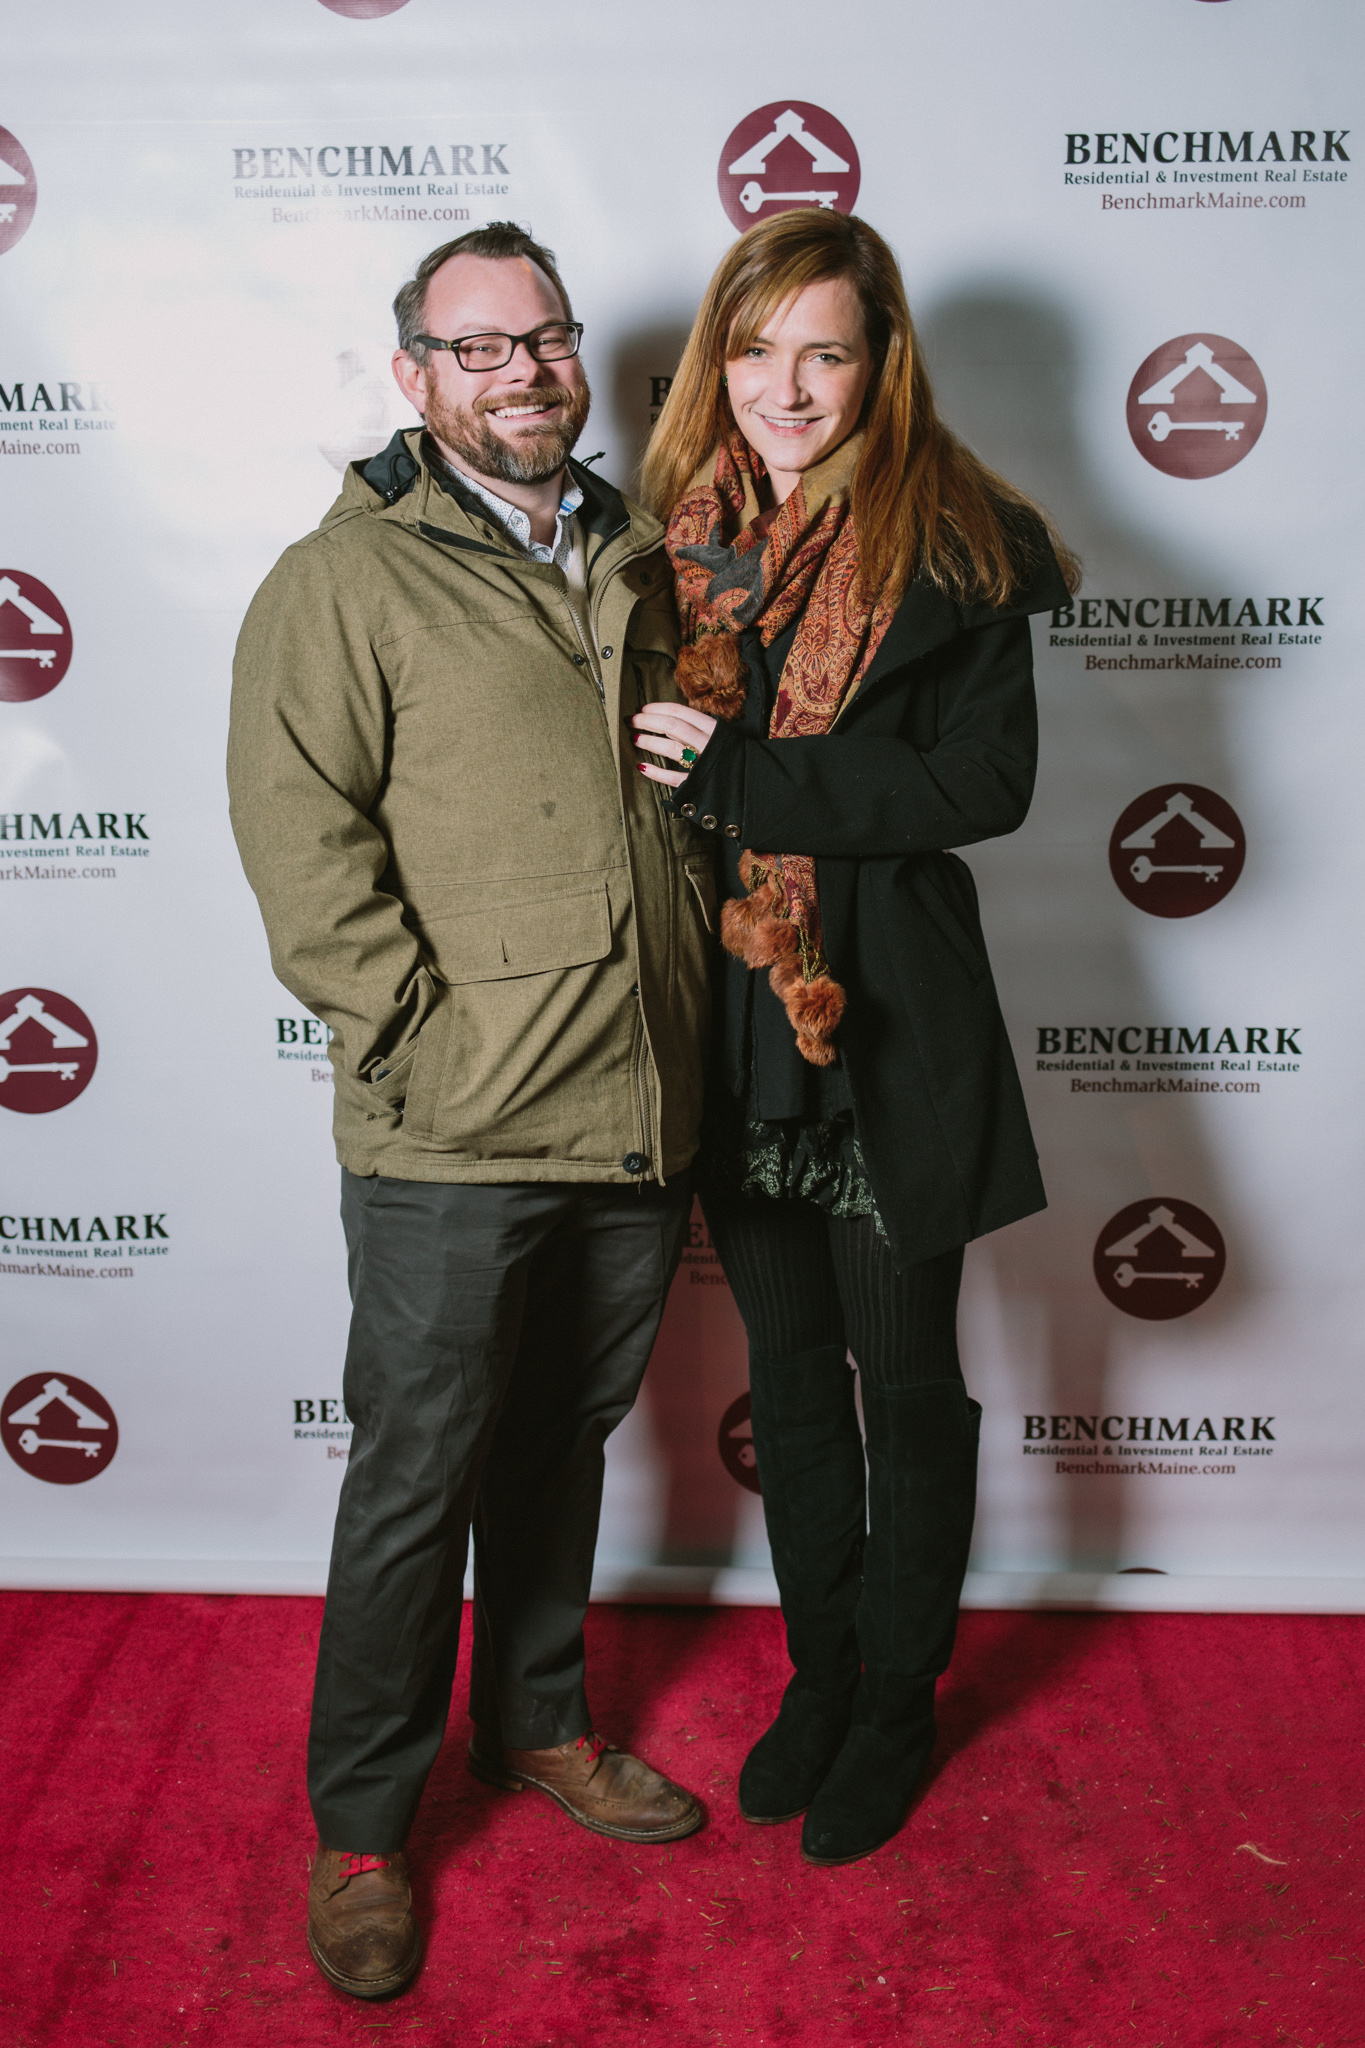 Benchmark_Holiday_Party_SR-078.jpg